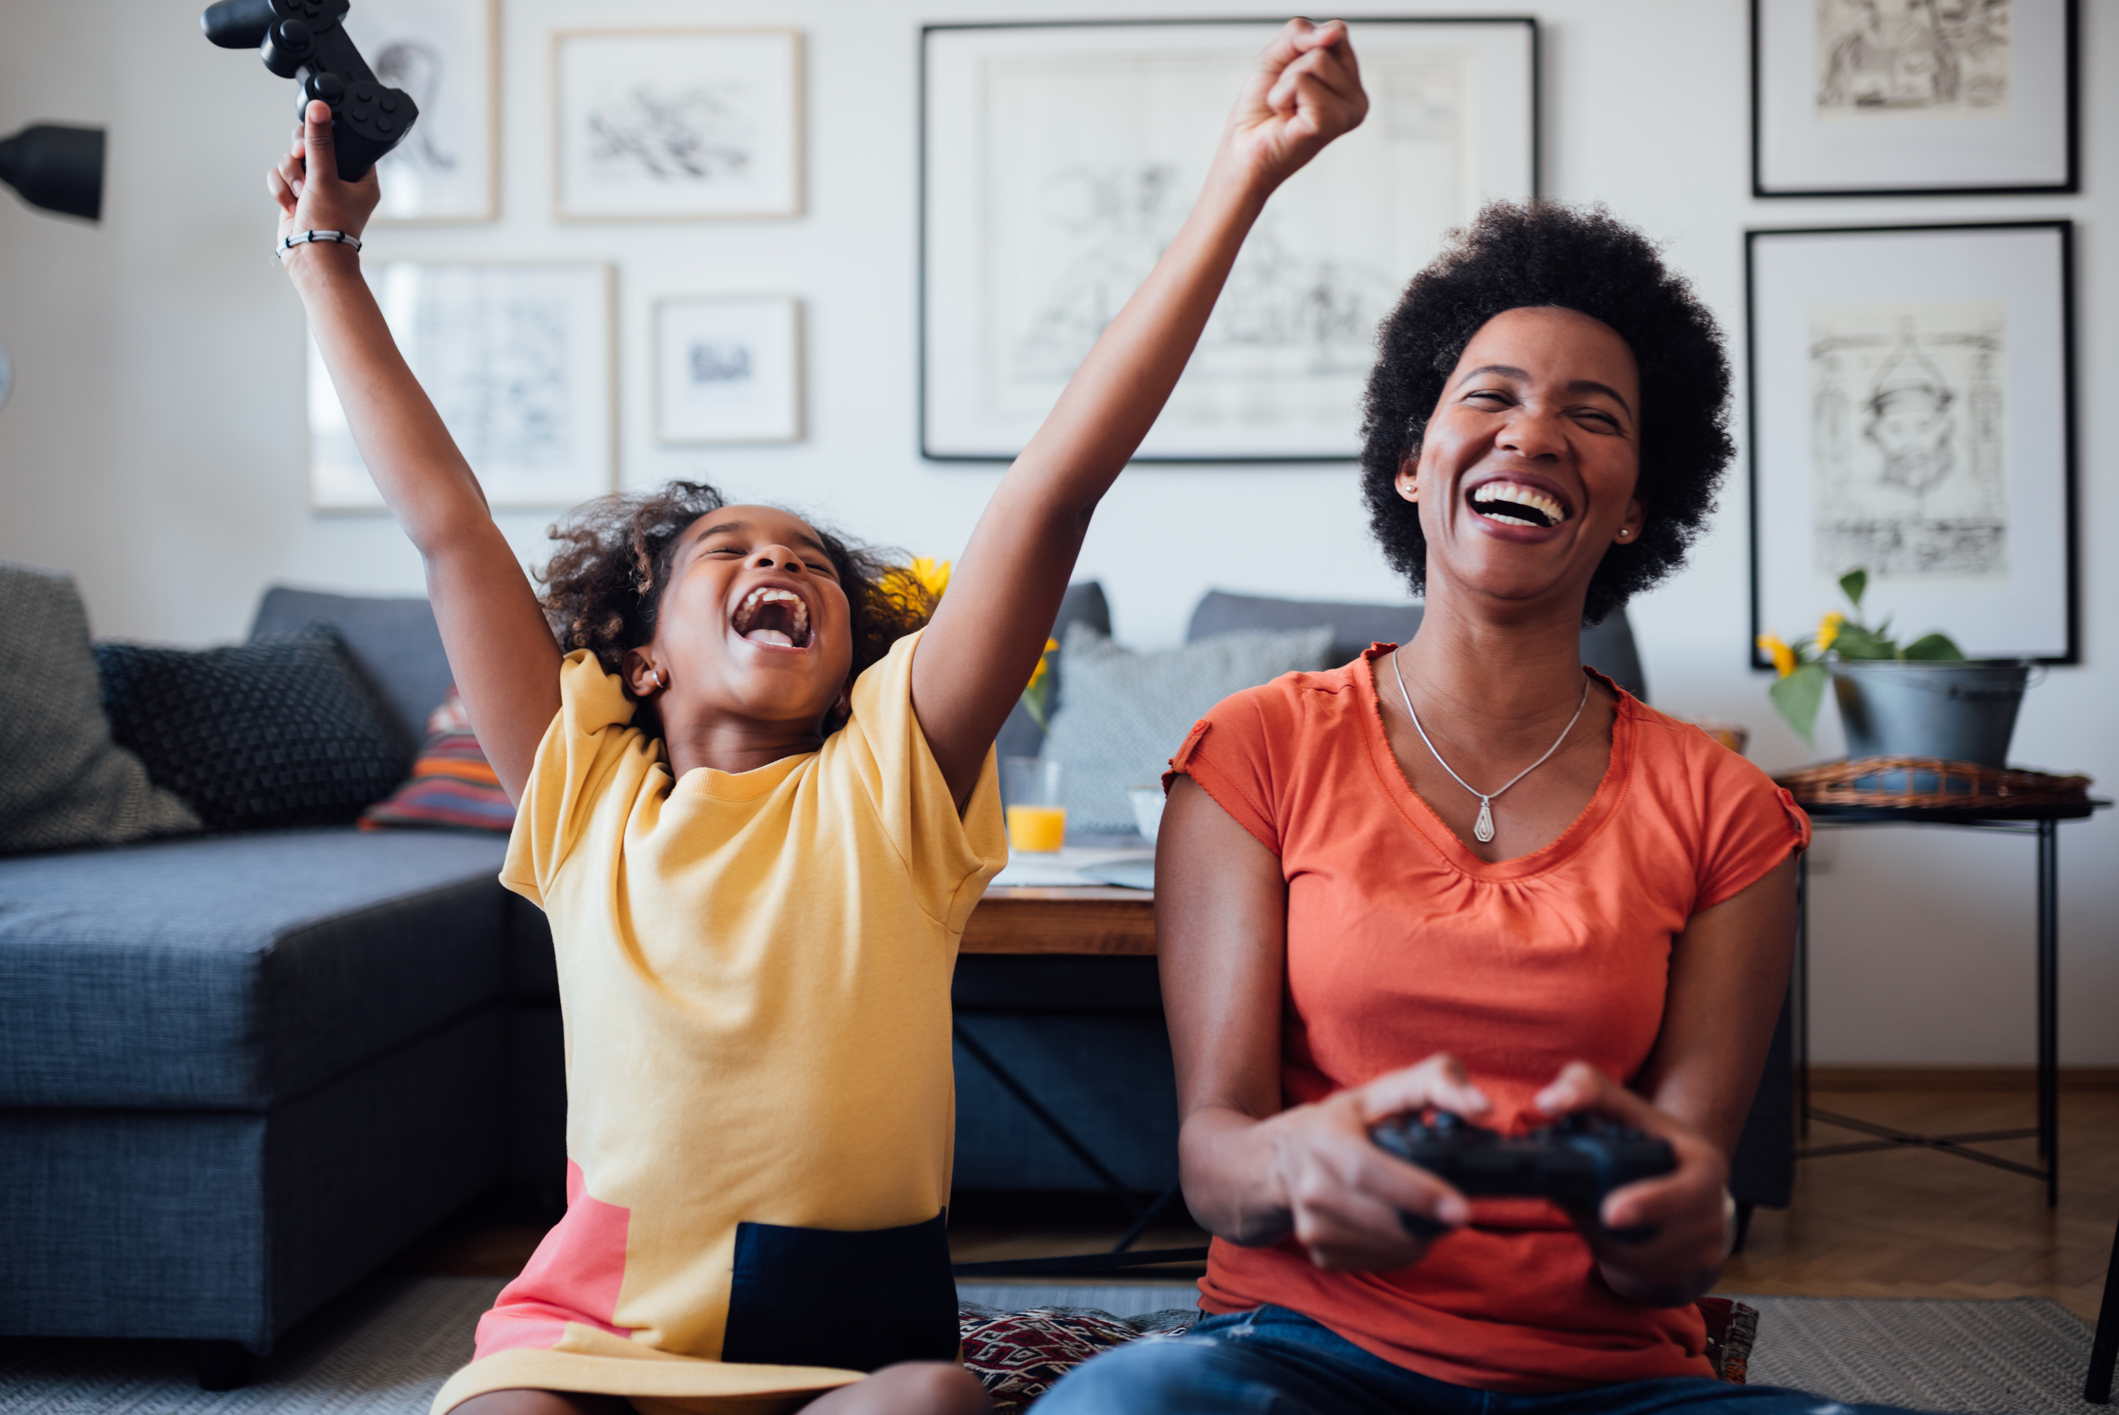 Joyful mom playing video games with young son